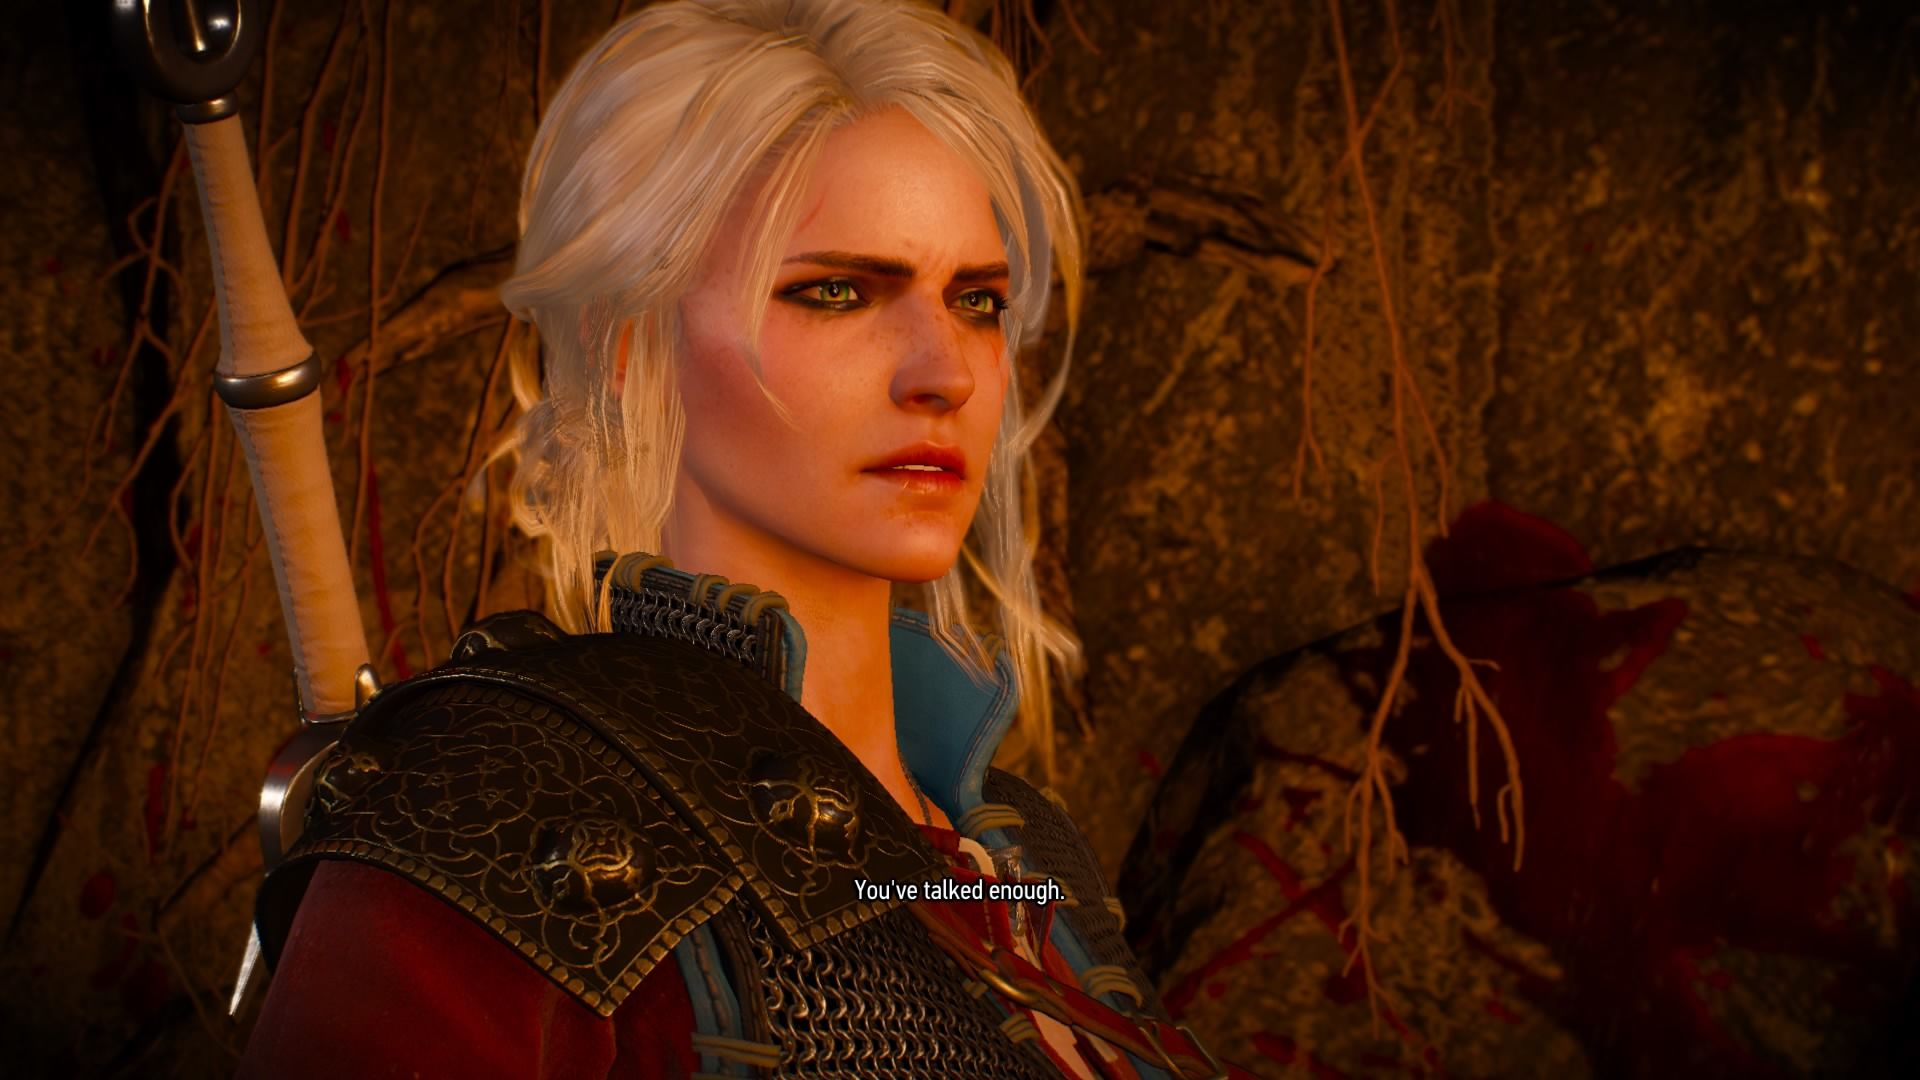 How to get the Bittersweet Ending in The Witcher 3